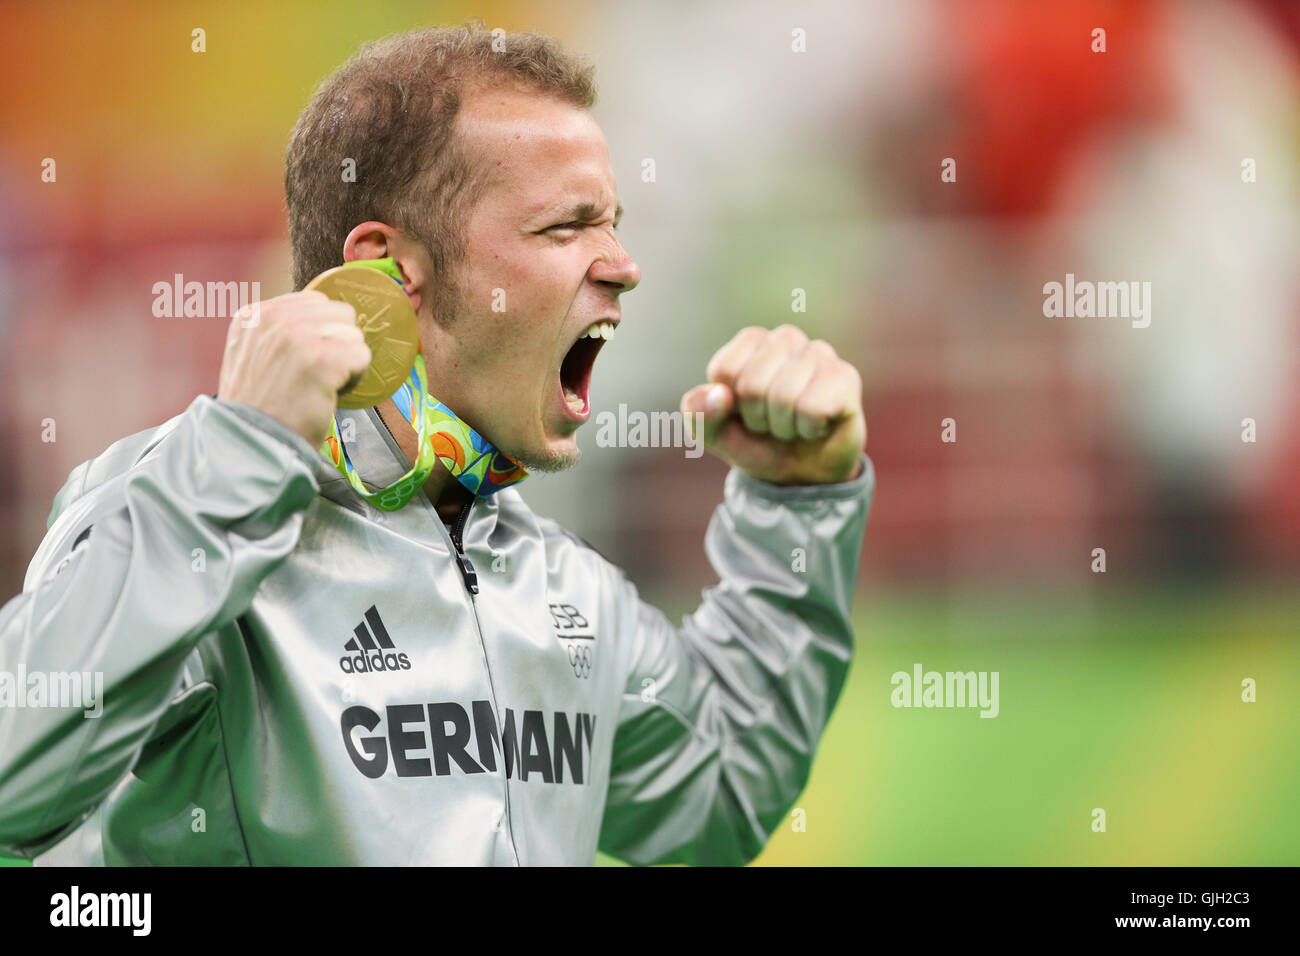 Rio De Janeiro, Brazil. 16th Aug, 2016. Gold medalist Germany's Fabian Hambuechen attends the awarding ceremony Stock Photo